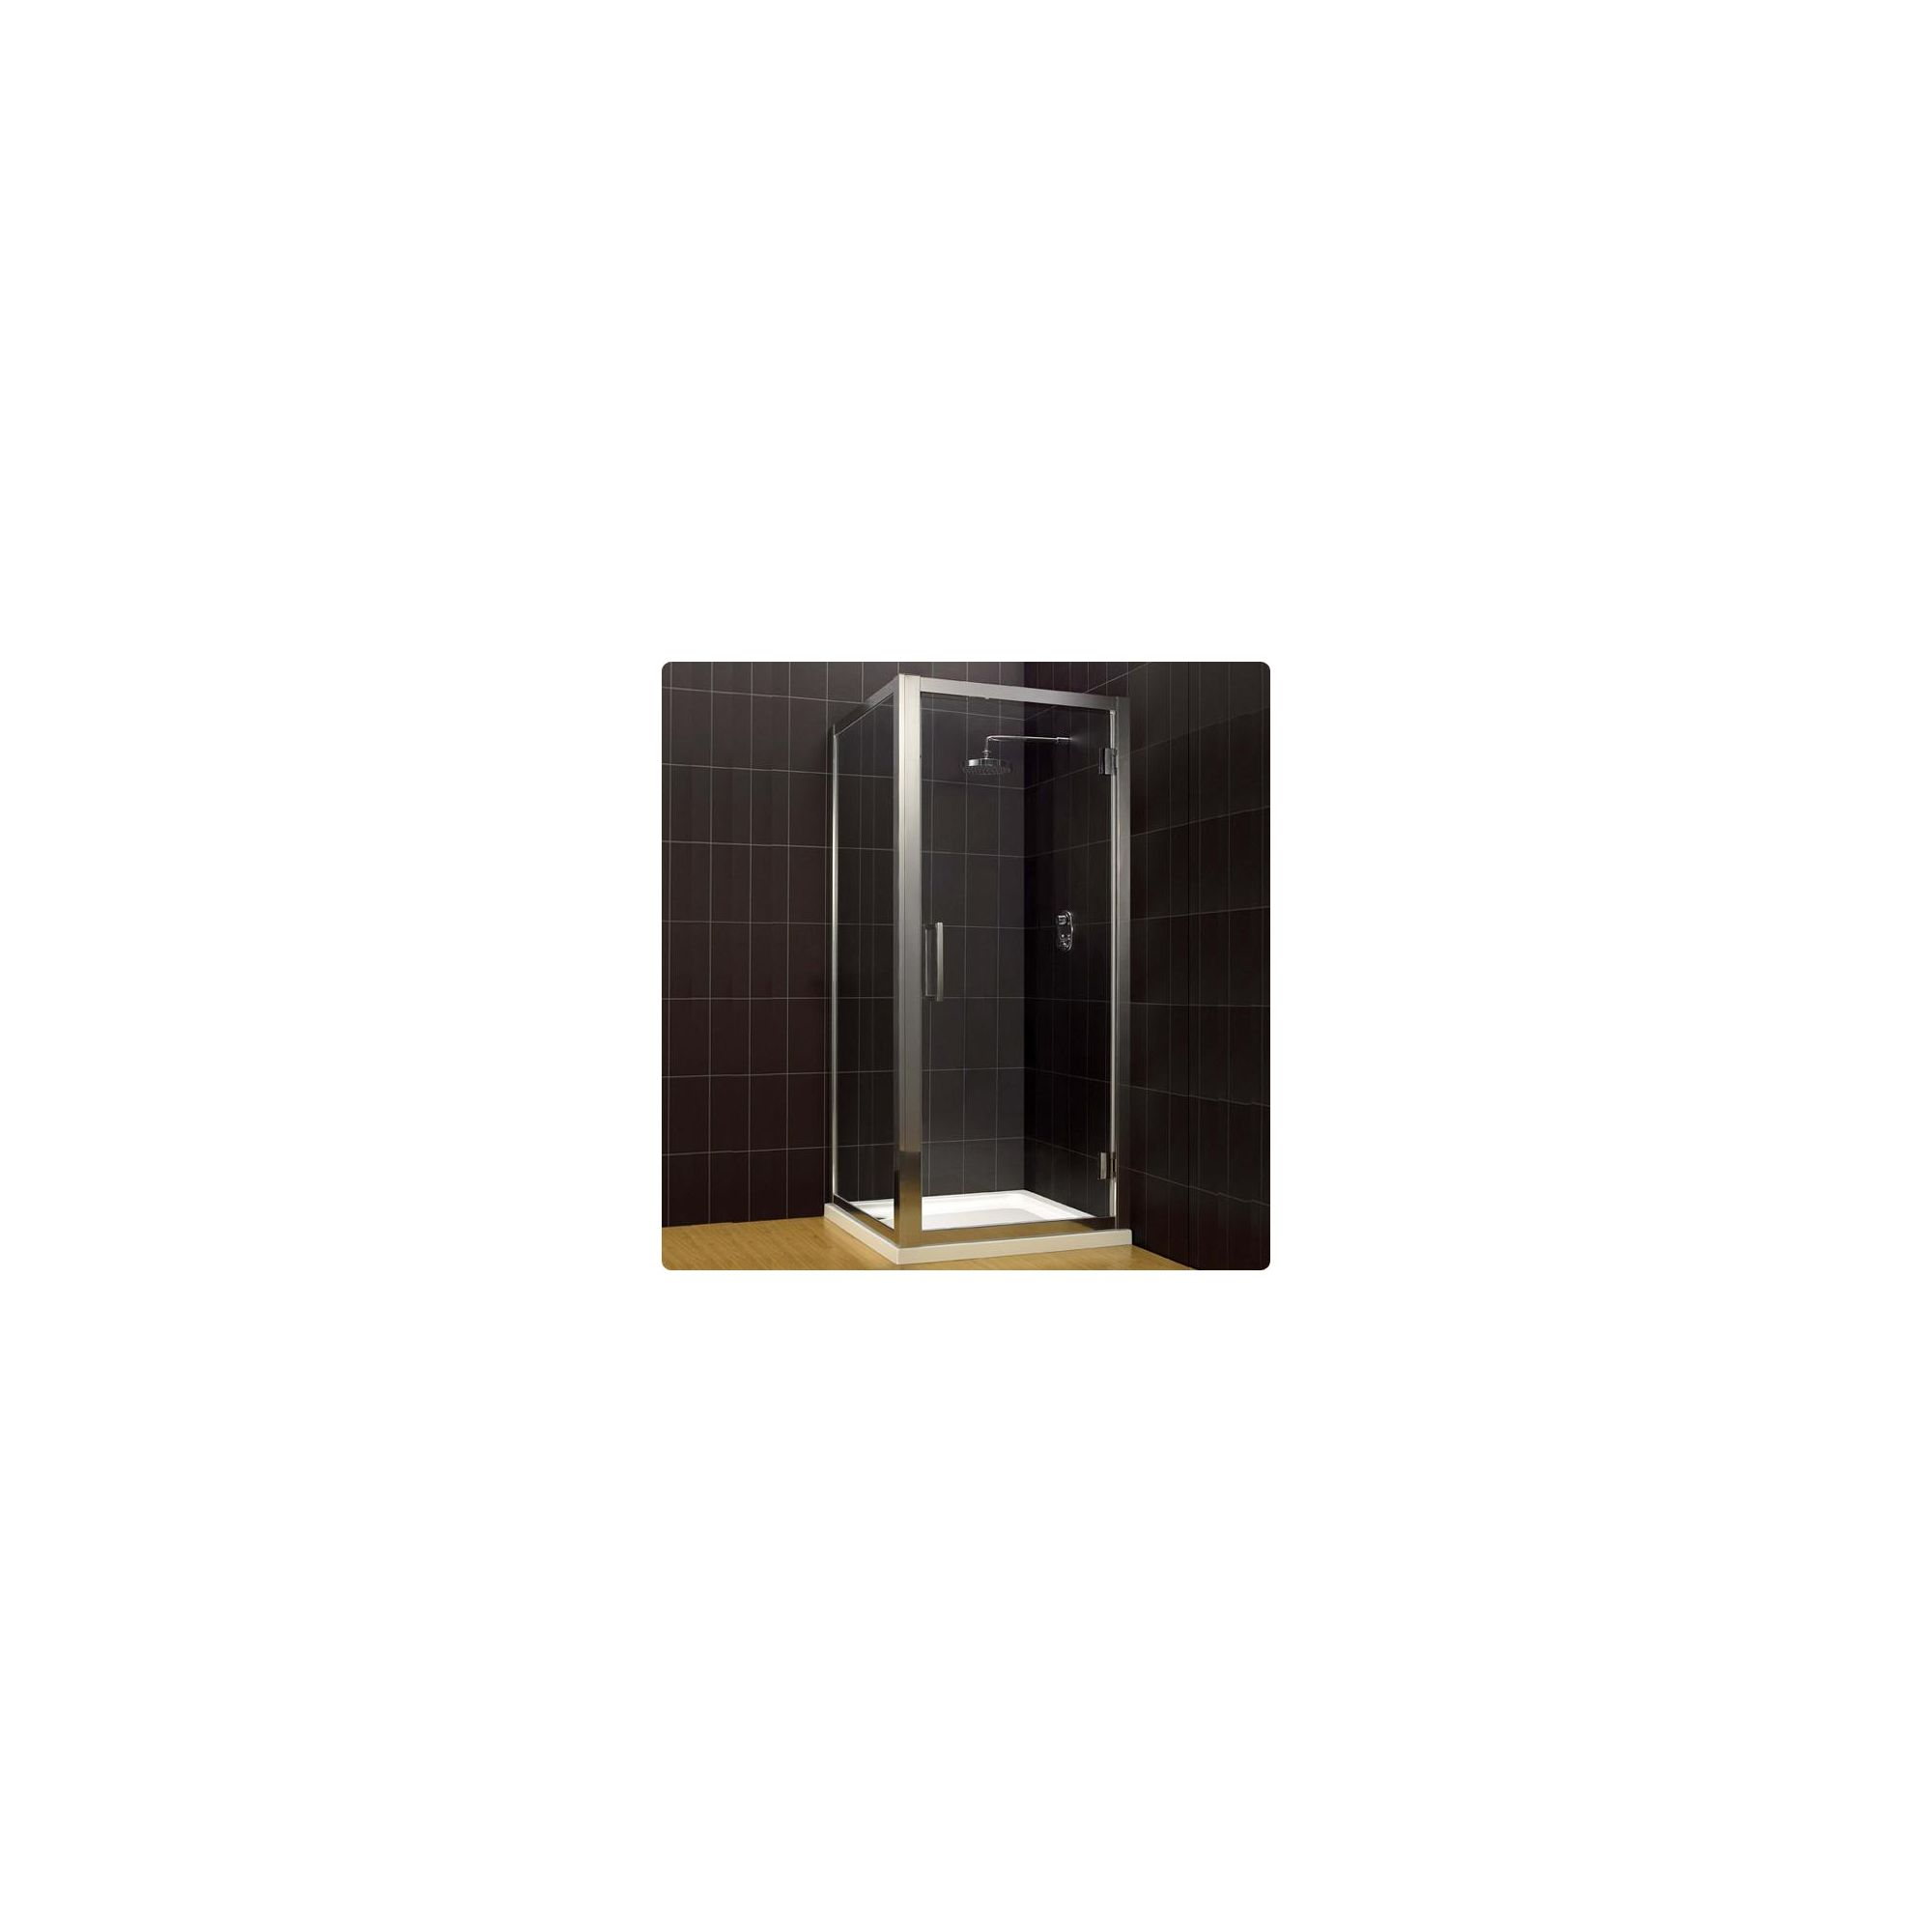 Duchy Supreme Silver Hinged Door Shower Enclosure, 700mm x 700mm, Standard Tray, 8mm Glass at Tesco Direct